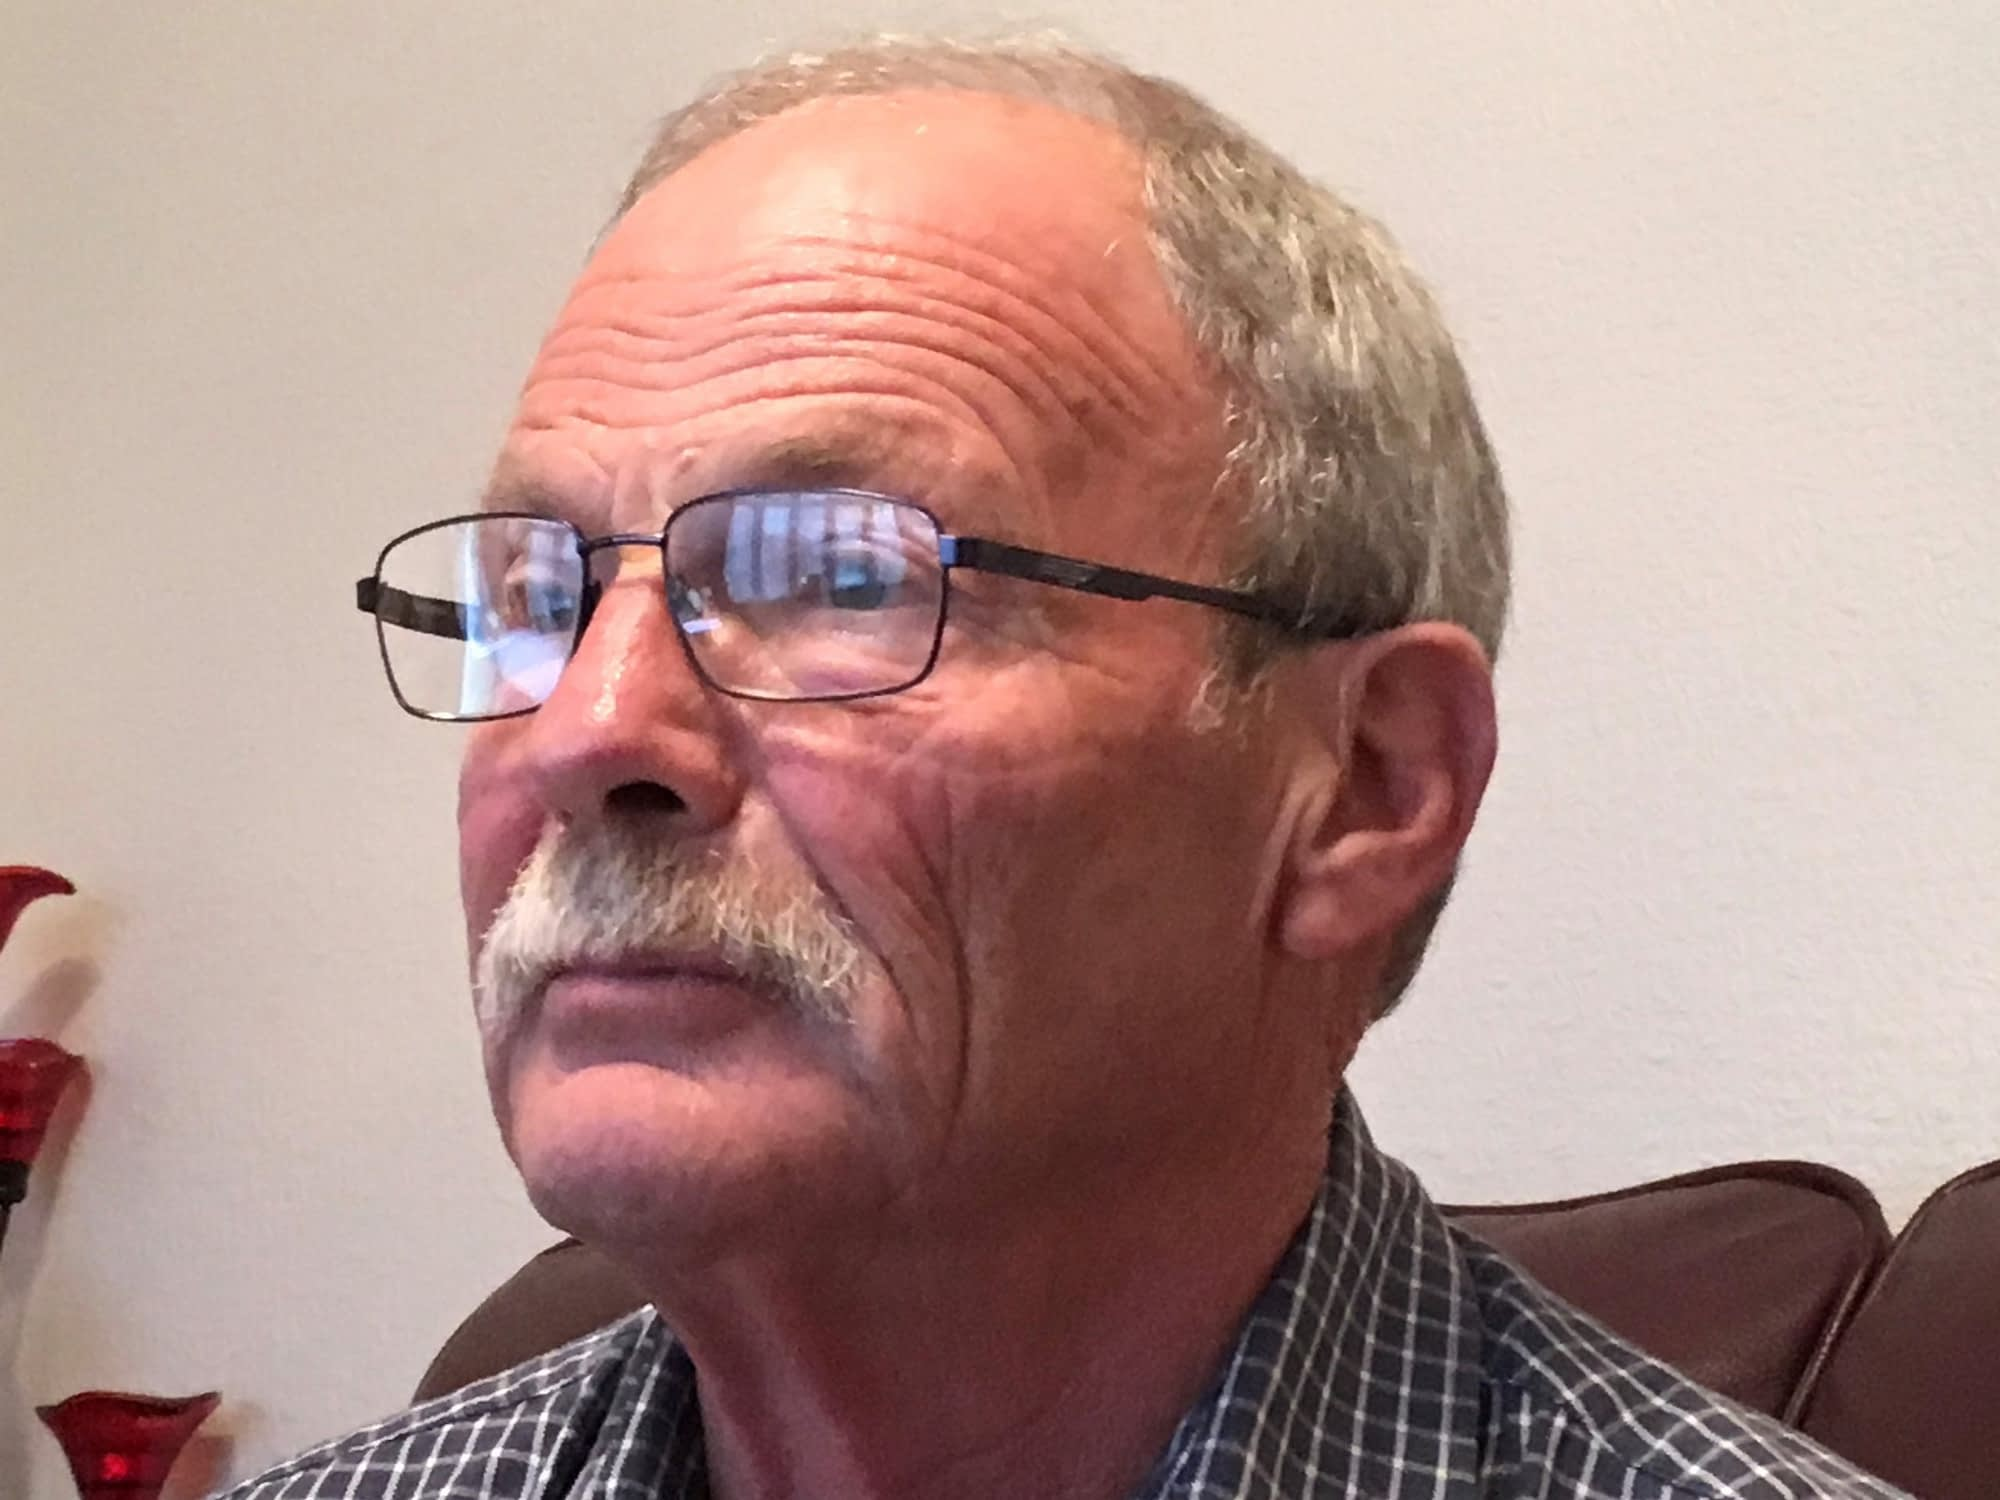 You are currently viewing UK Veteran thrilled with his new fully funded hearing aids